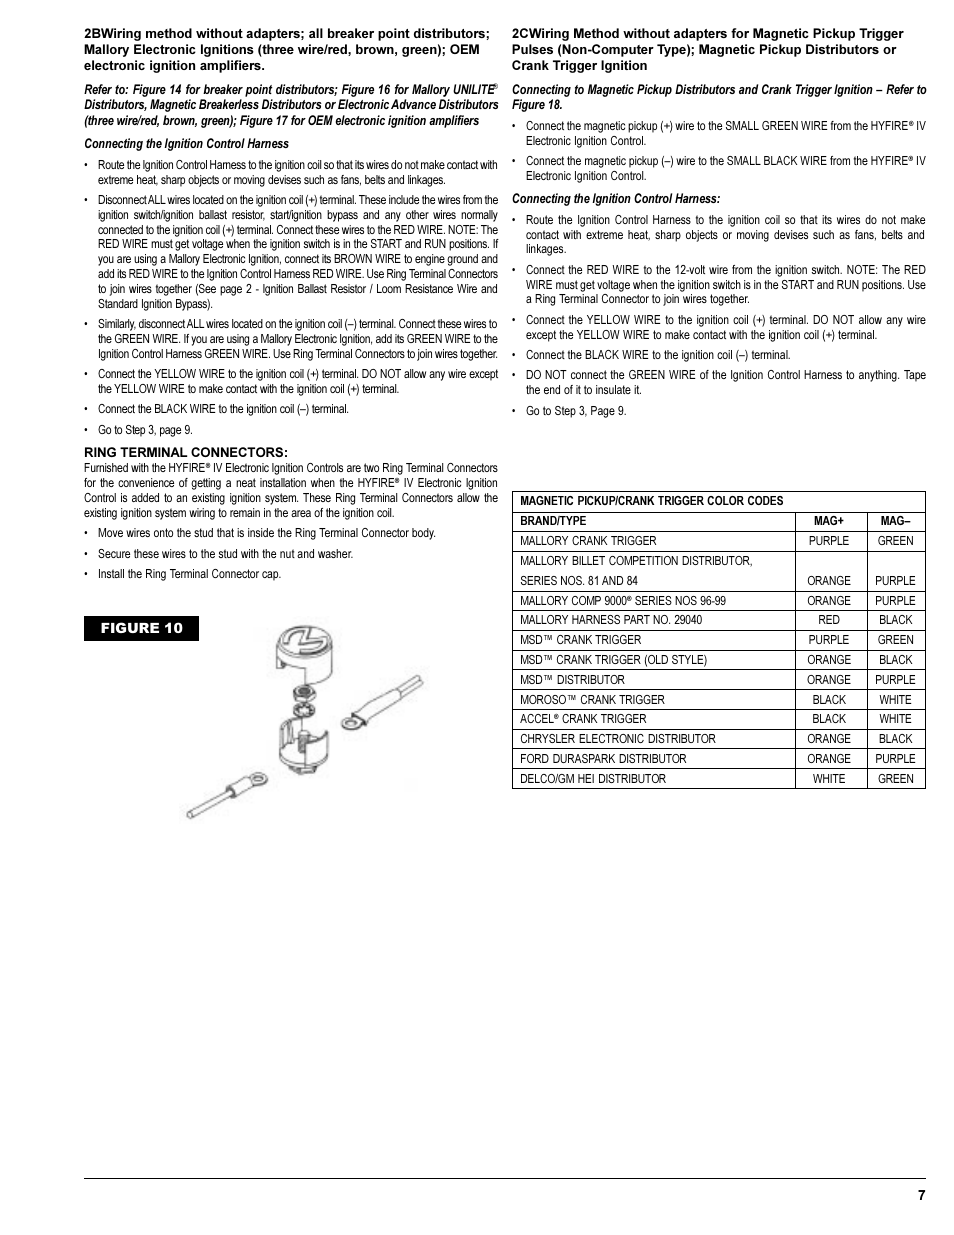 Mallory Ignition Mallory Hyfire Iv Series Ignition System 692 697 User Manual